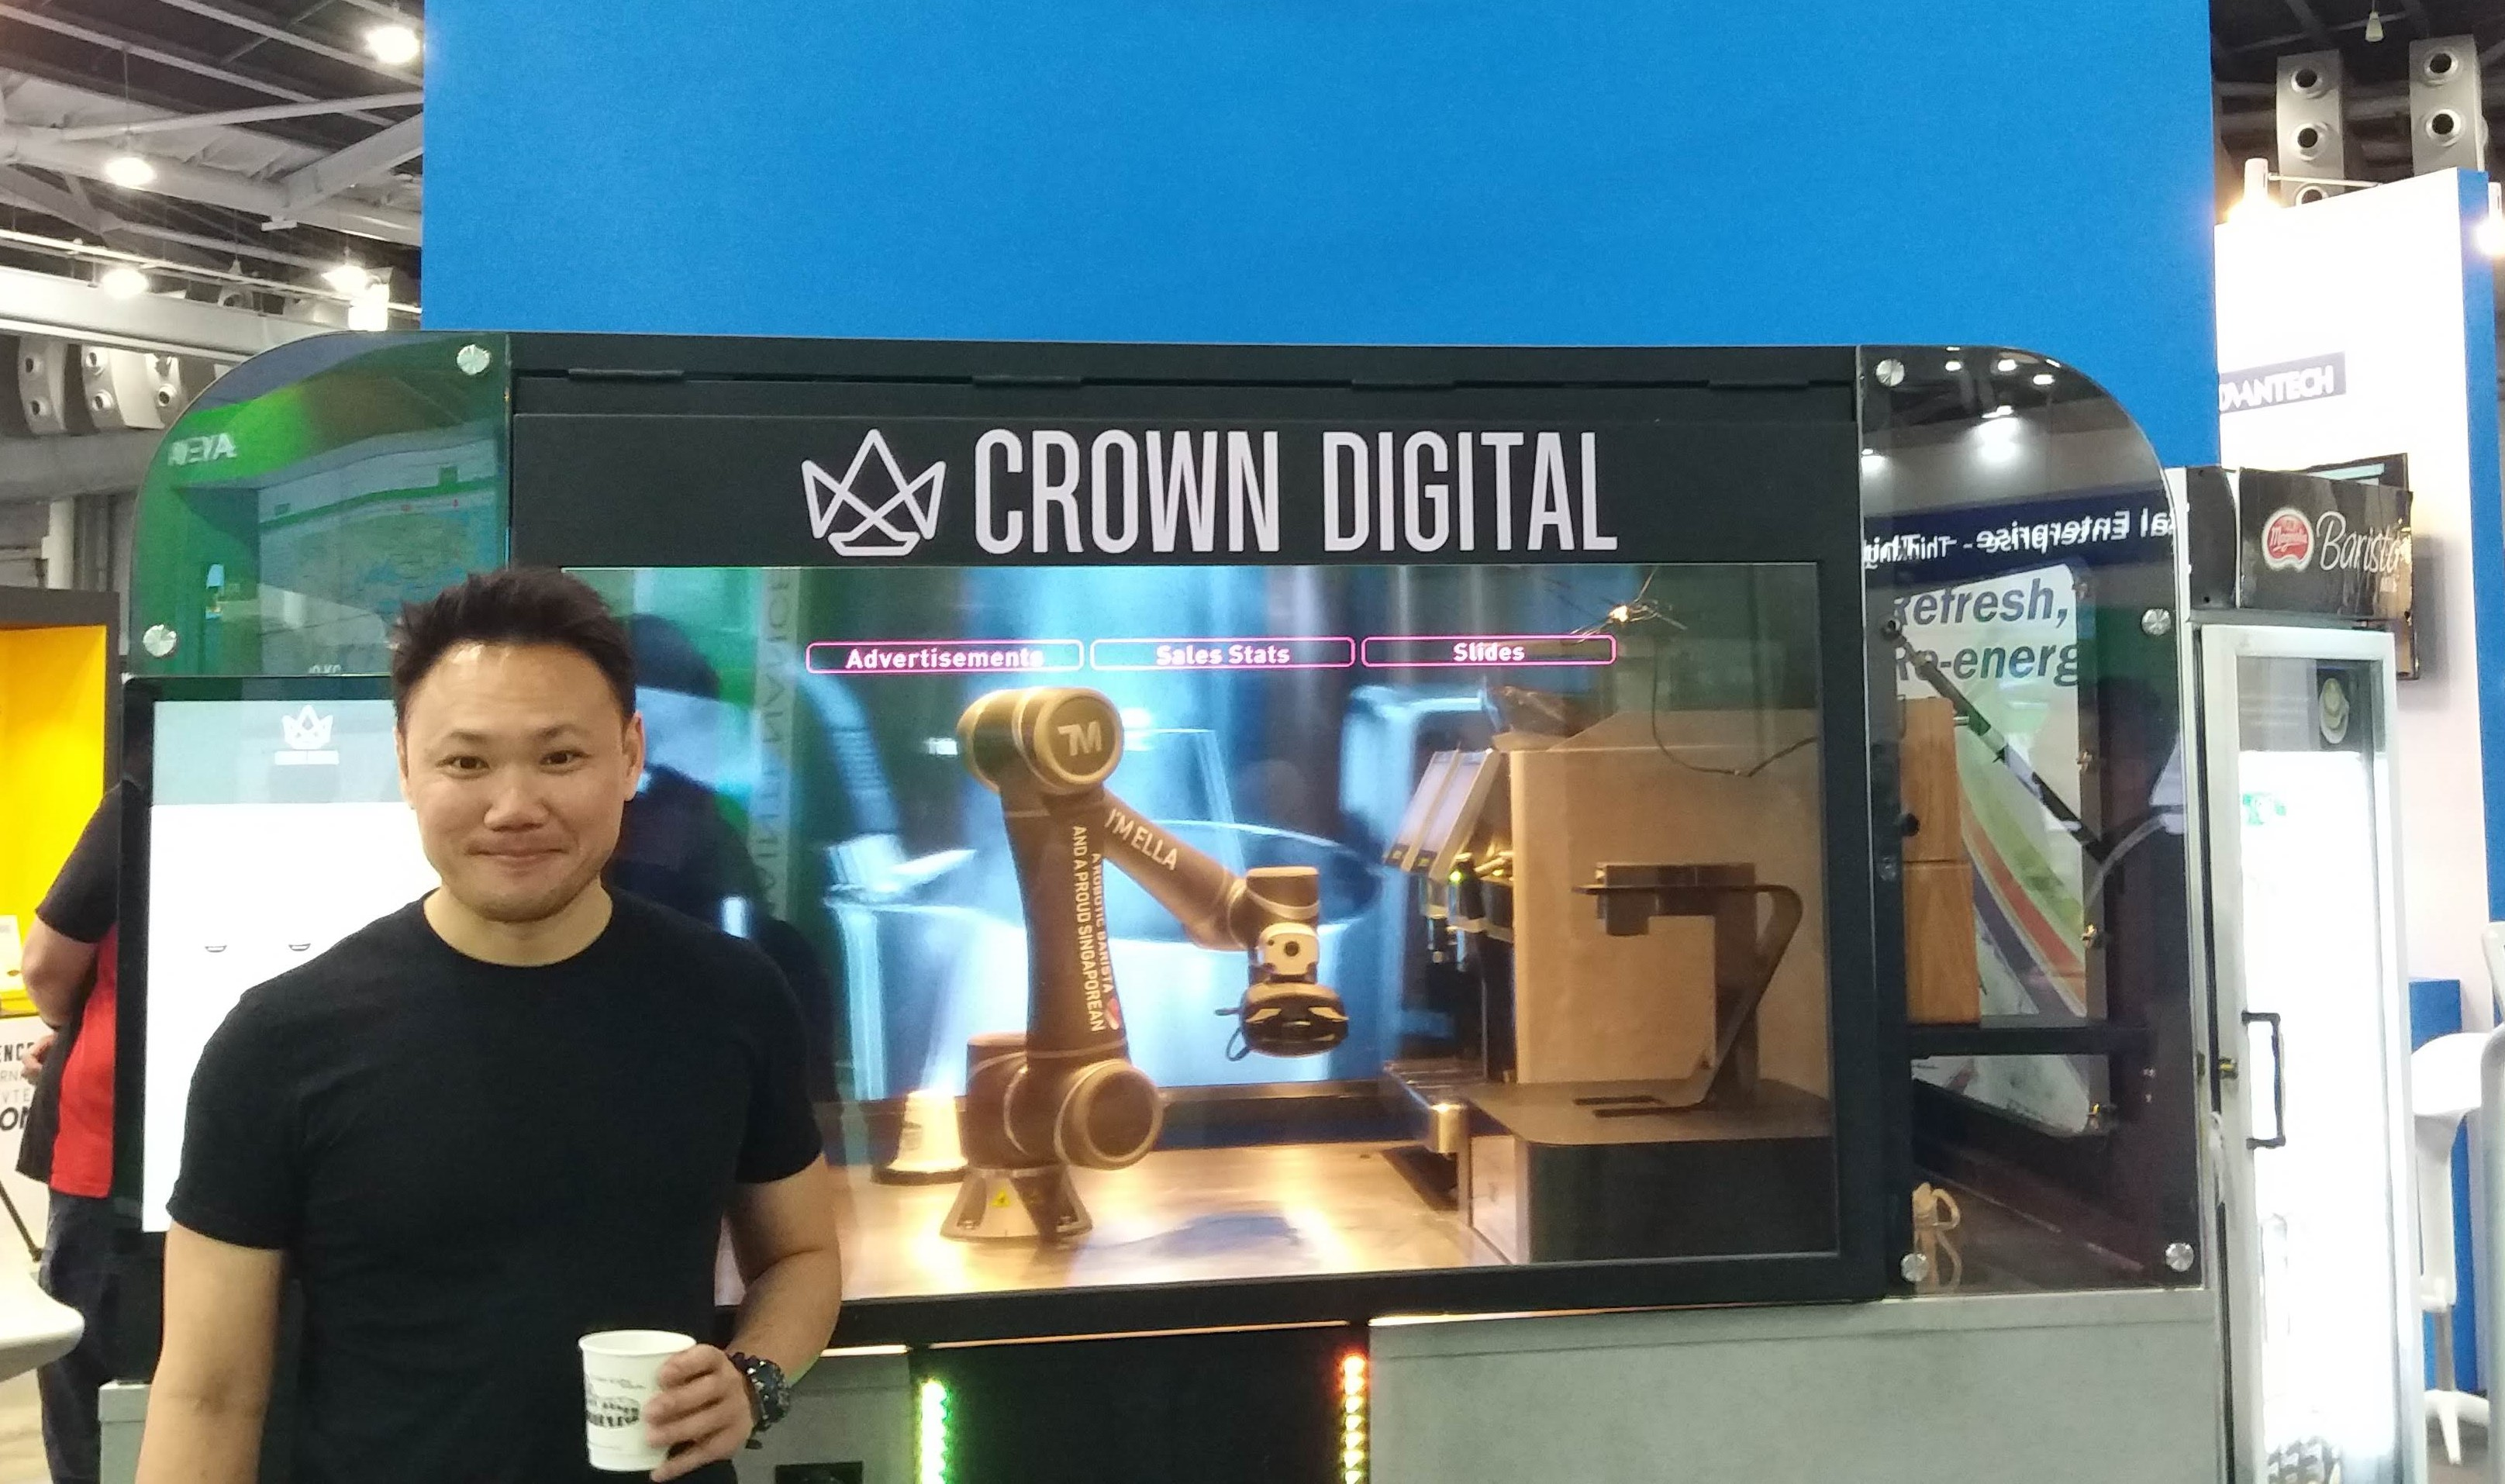 Industry 4.0 coffee: Introducing Ella the robotic barista from Singapore